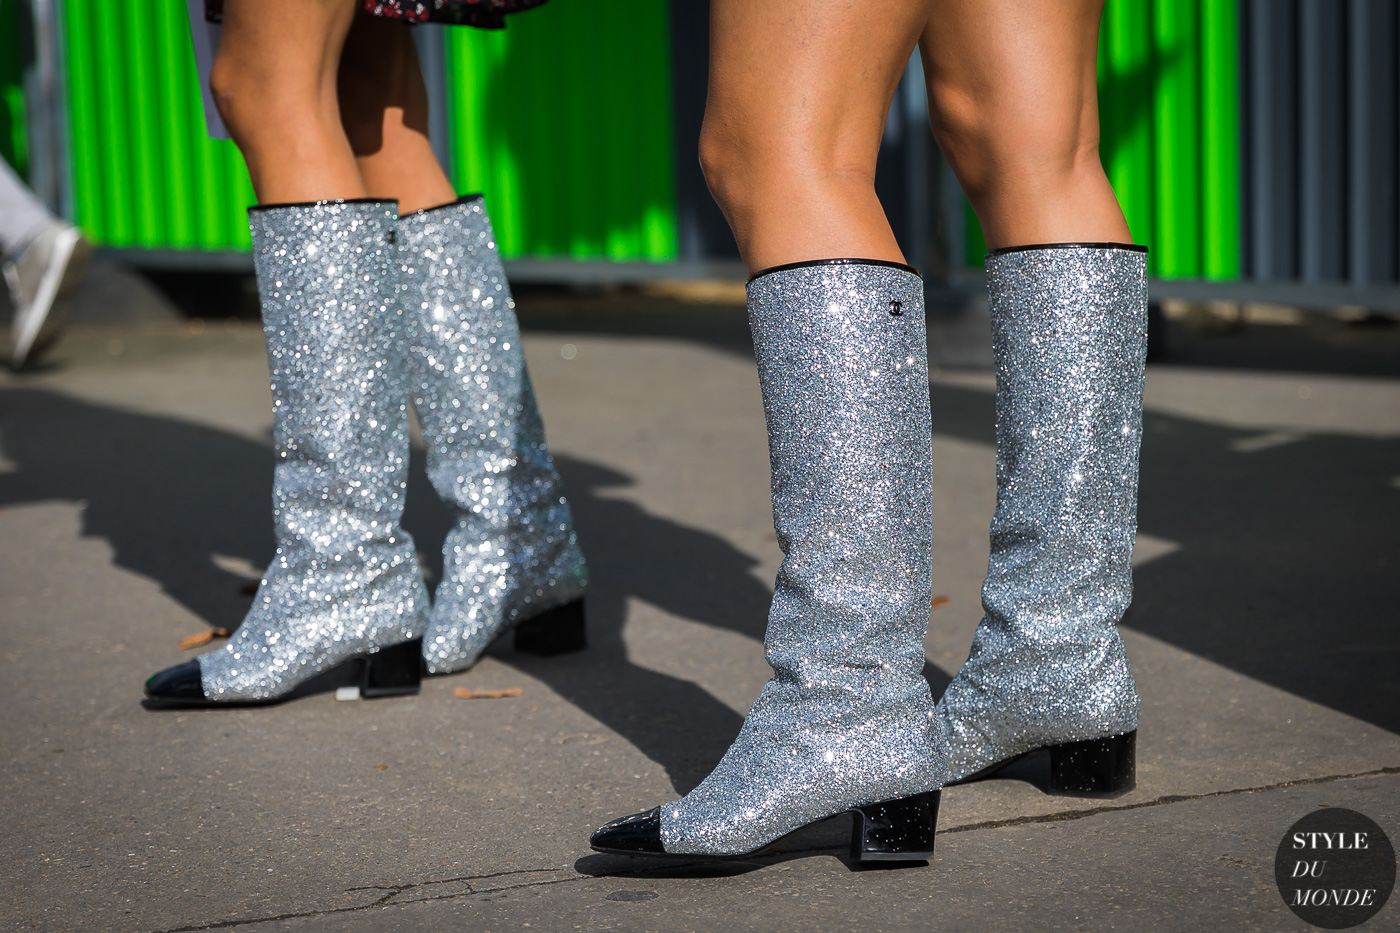 Chanel boots by STYLEDUMONDE Street Style Fashion Photography_48A3505